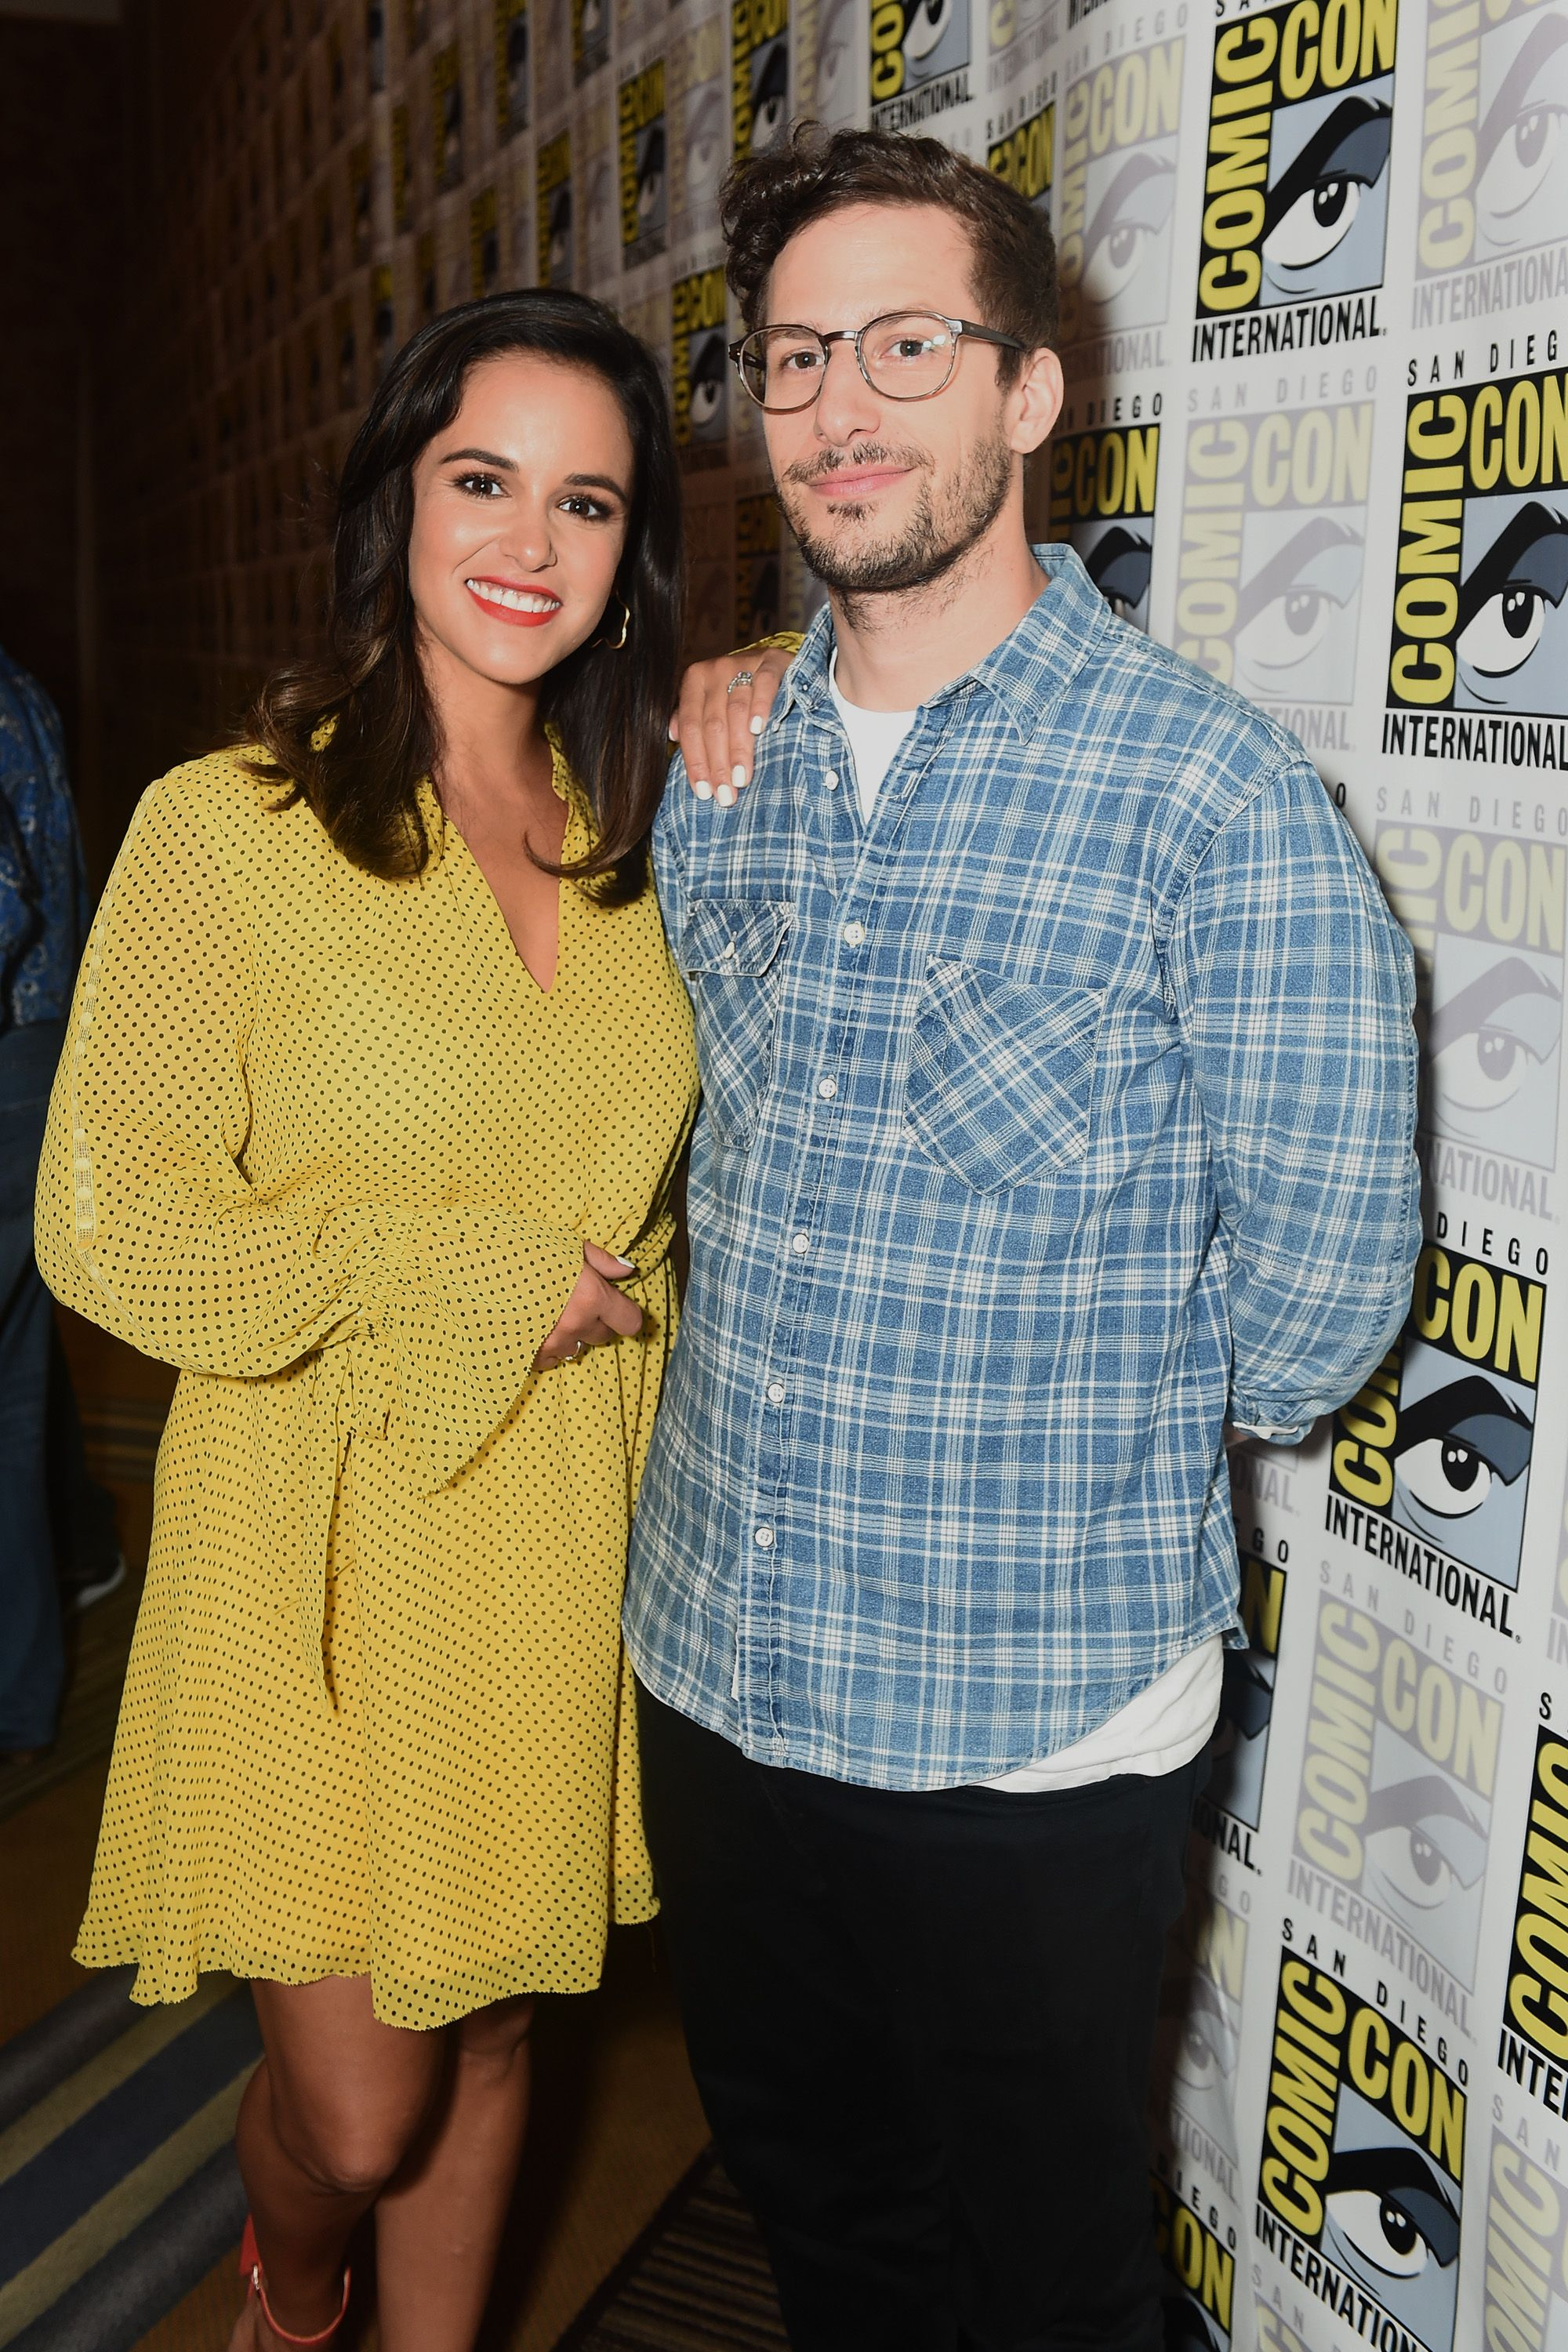 TV couple Amy and Jake standing together for a photo at an event.